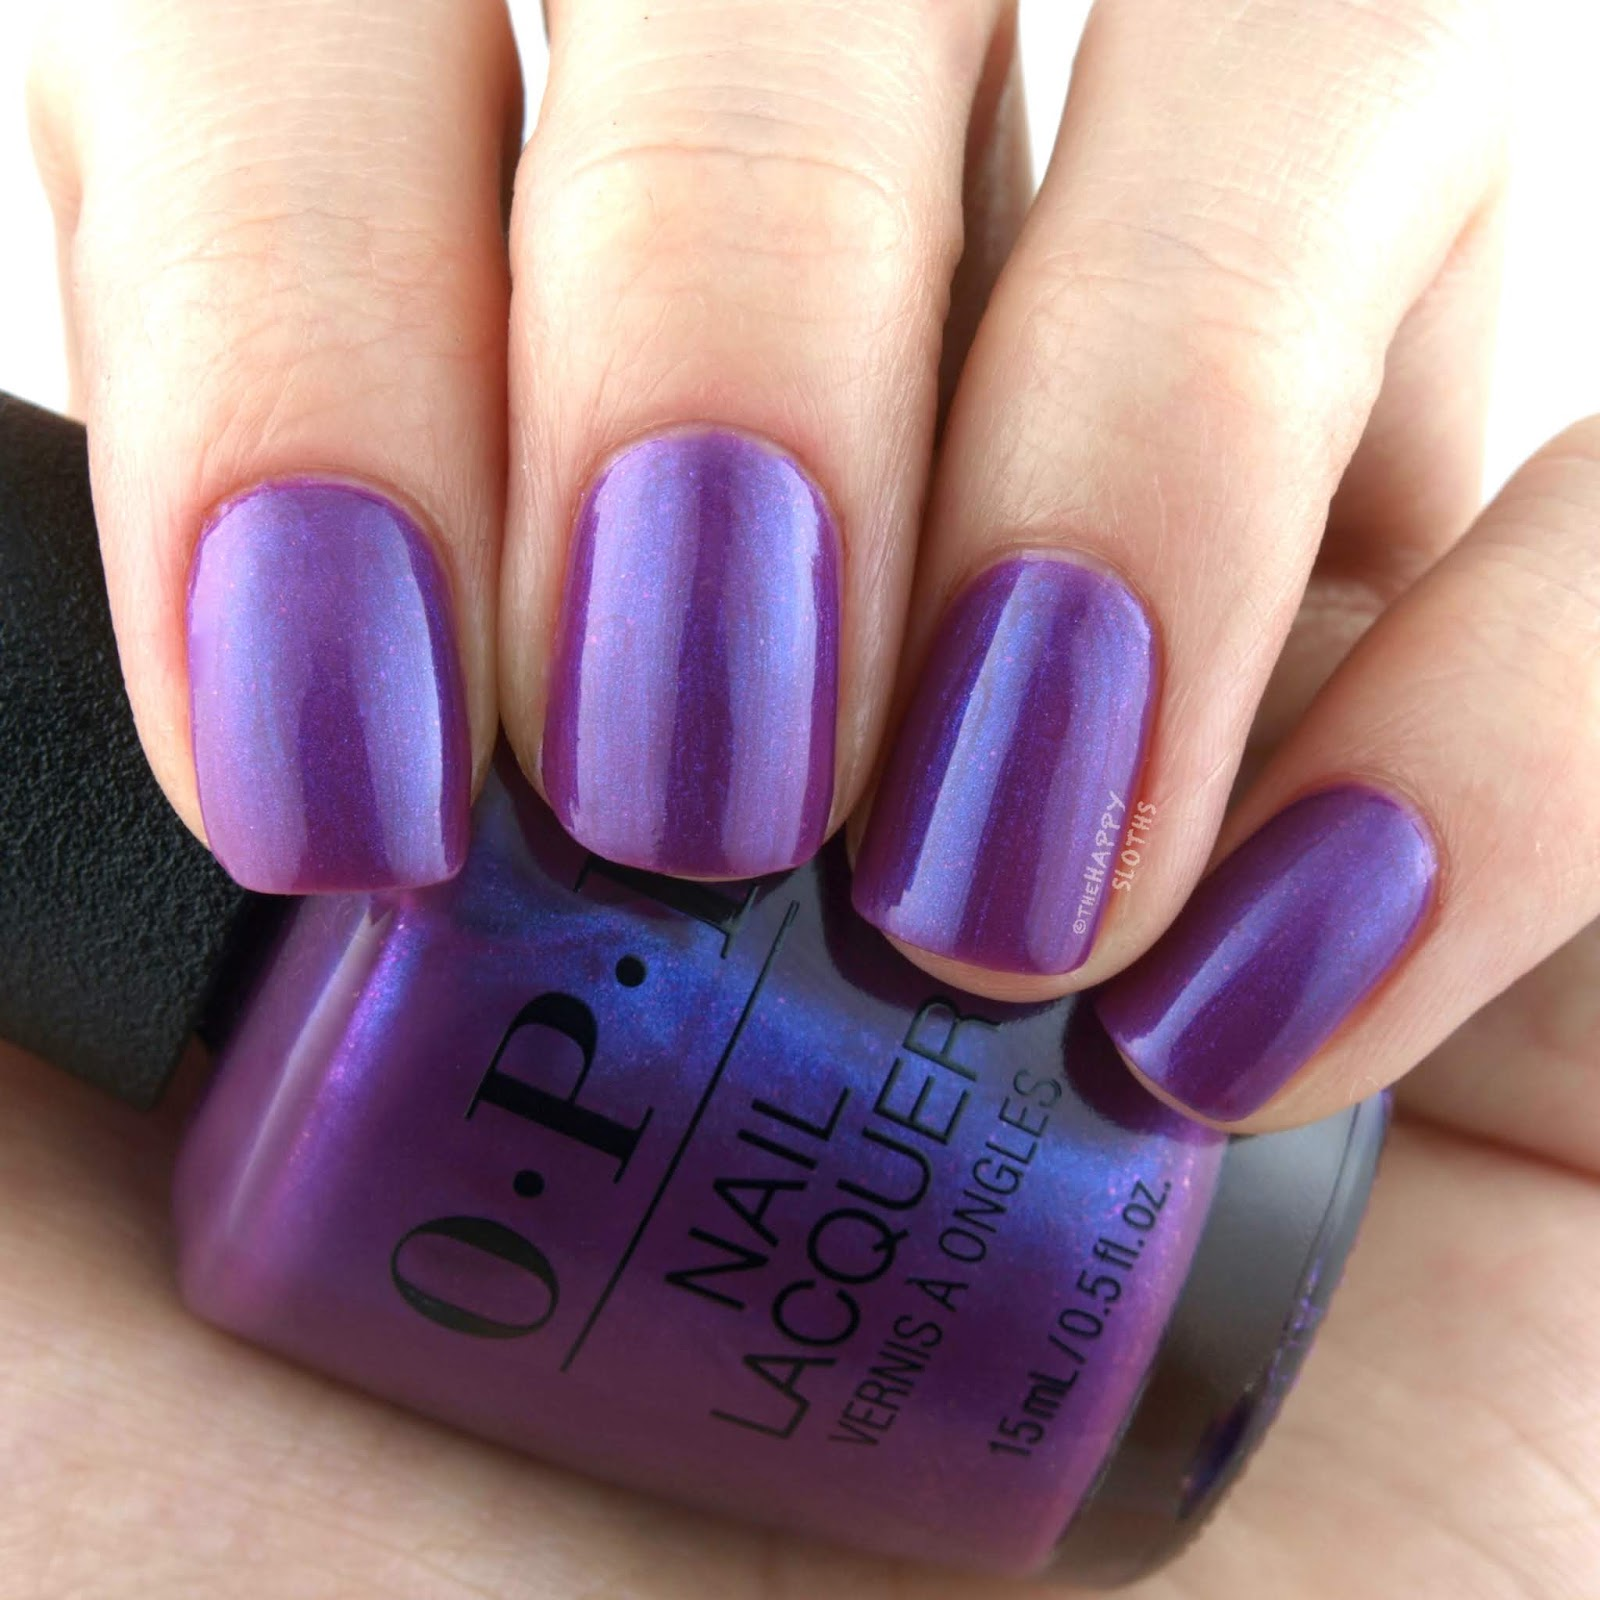 OPI Spring 2019 Tokyo Collection | Samurai Breaks a Nail: Review and Swatches